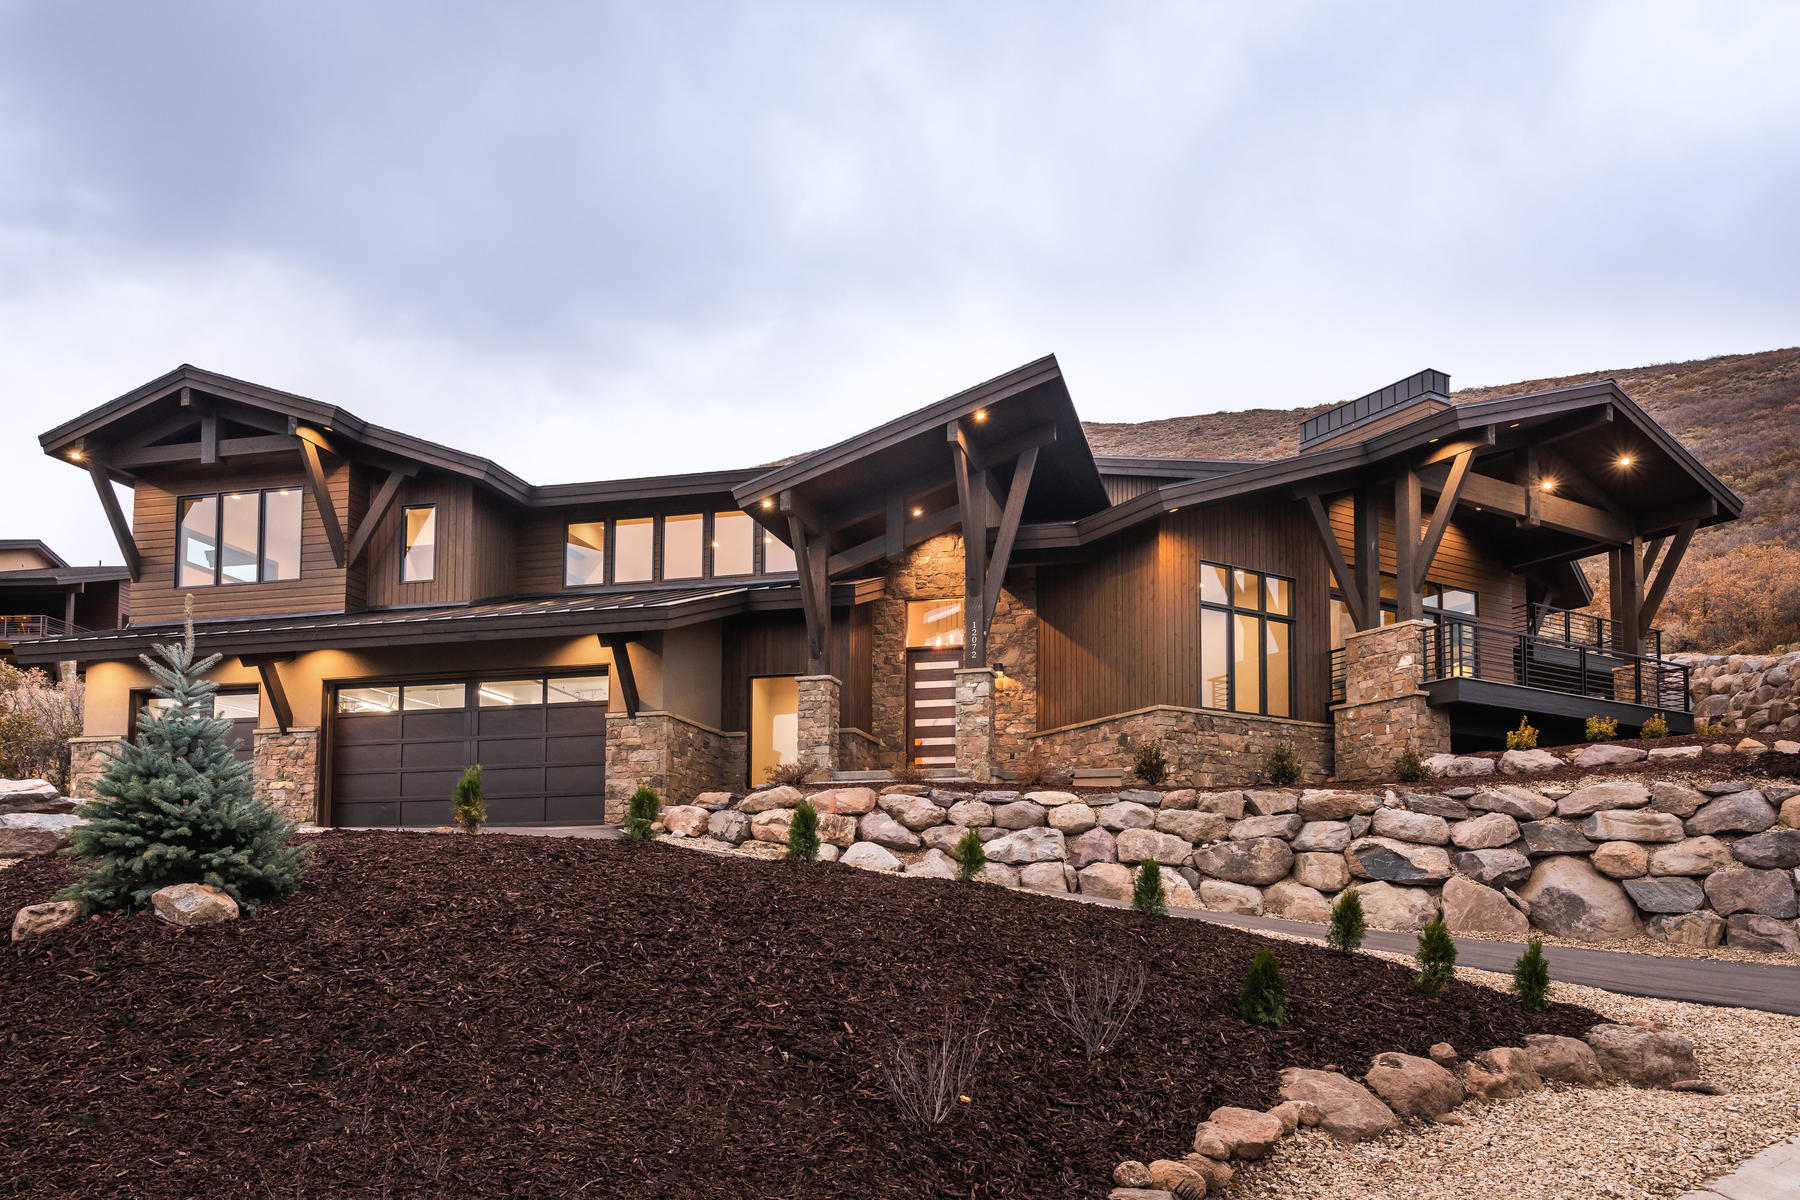 Single Family Homes for Sale at Spectacular New Construction With Sweeping Views 12072 N Sage Hollow Circle, Kamas, Utah 84036 United States